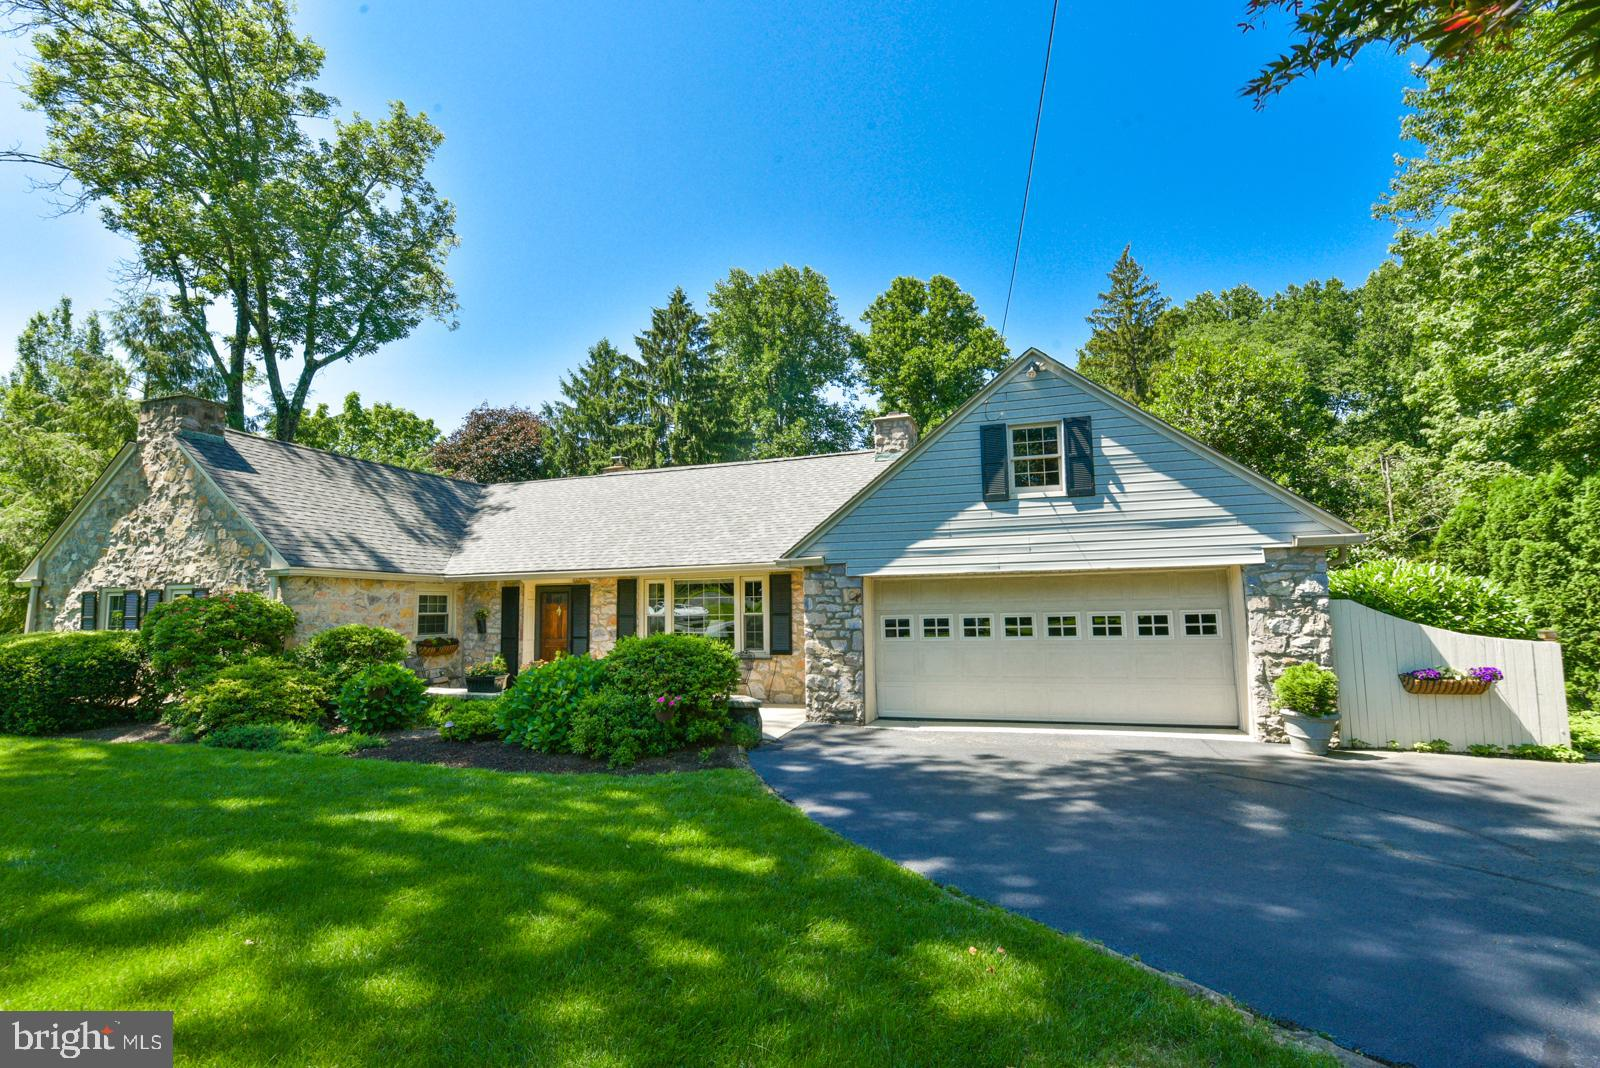 3100 MILL ROAD, WORCESTER, PA 19490